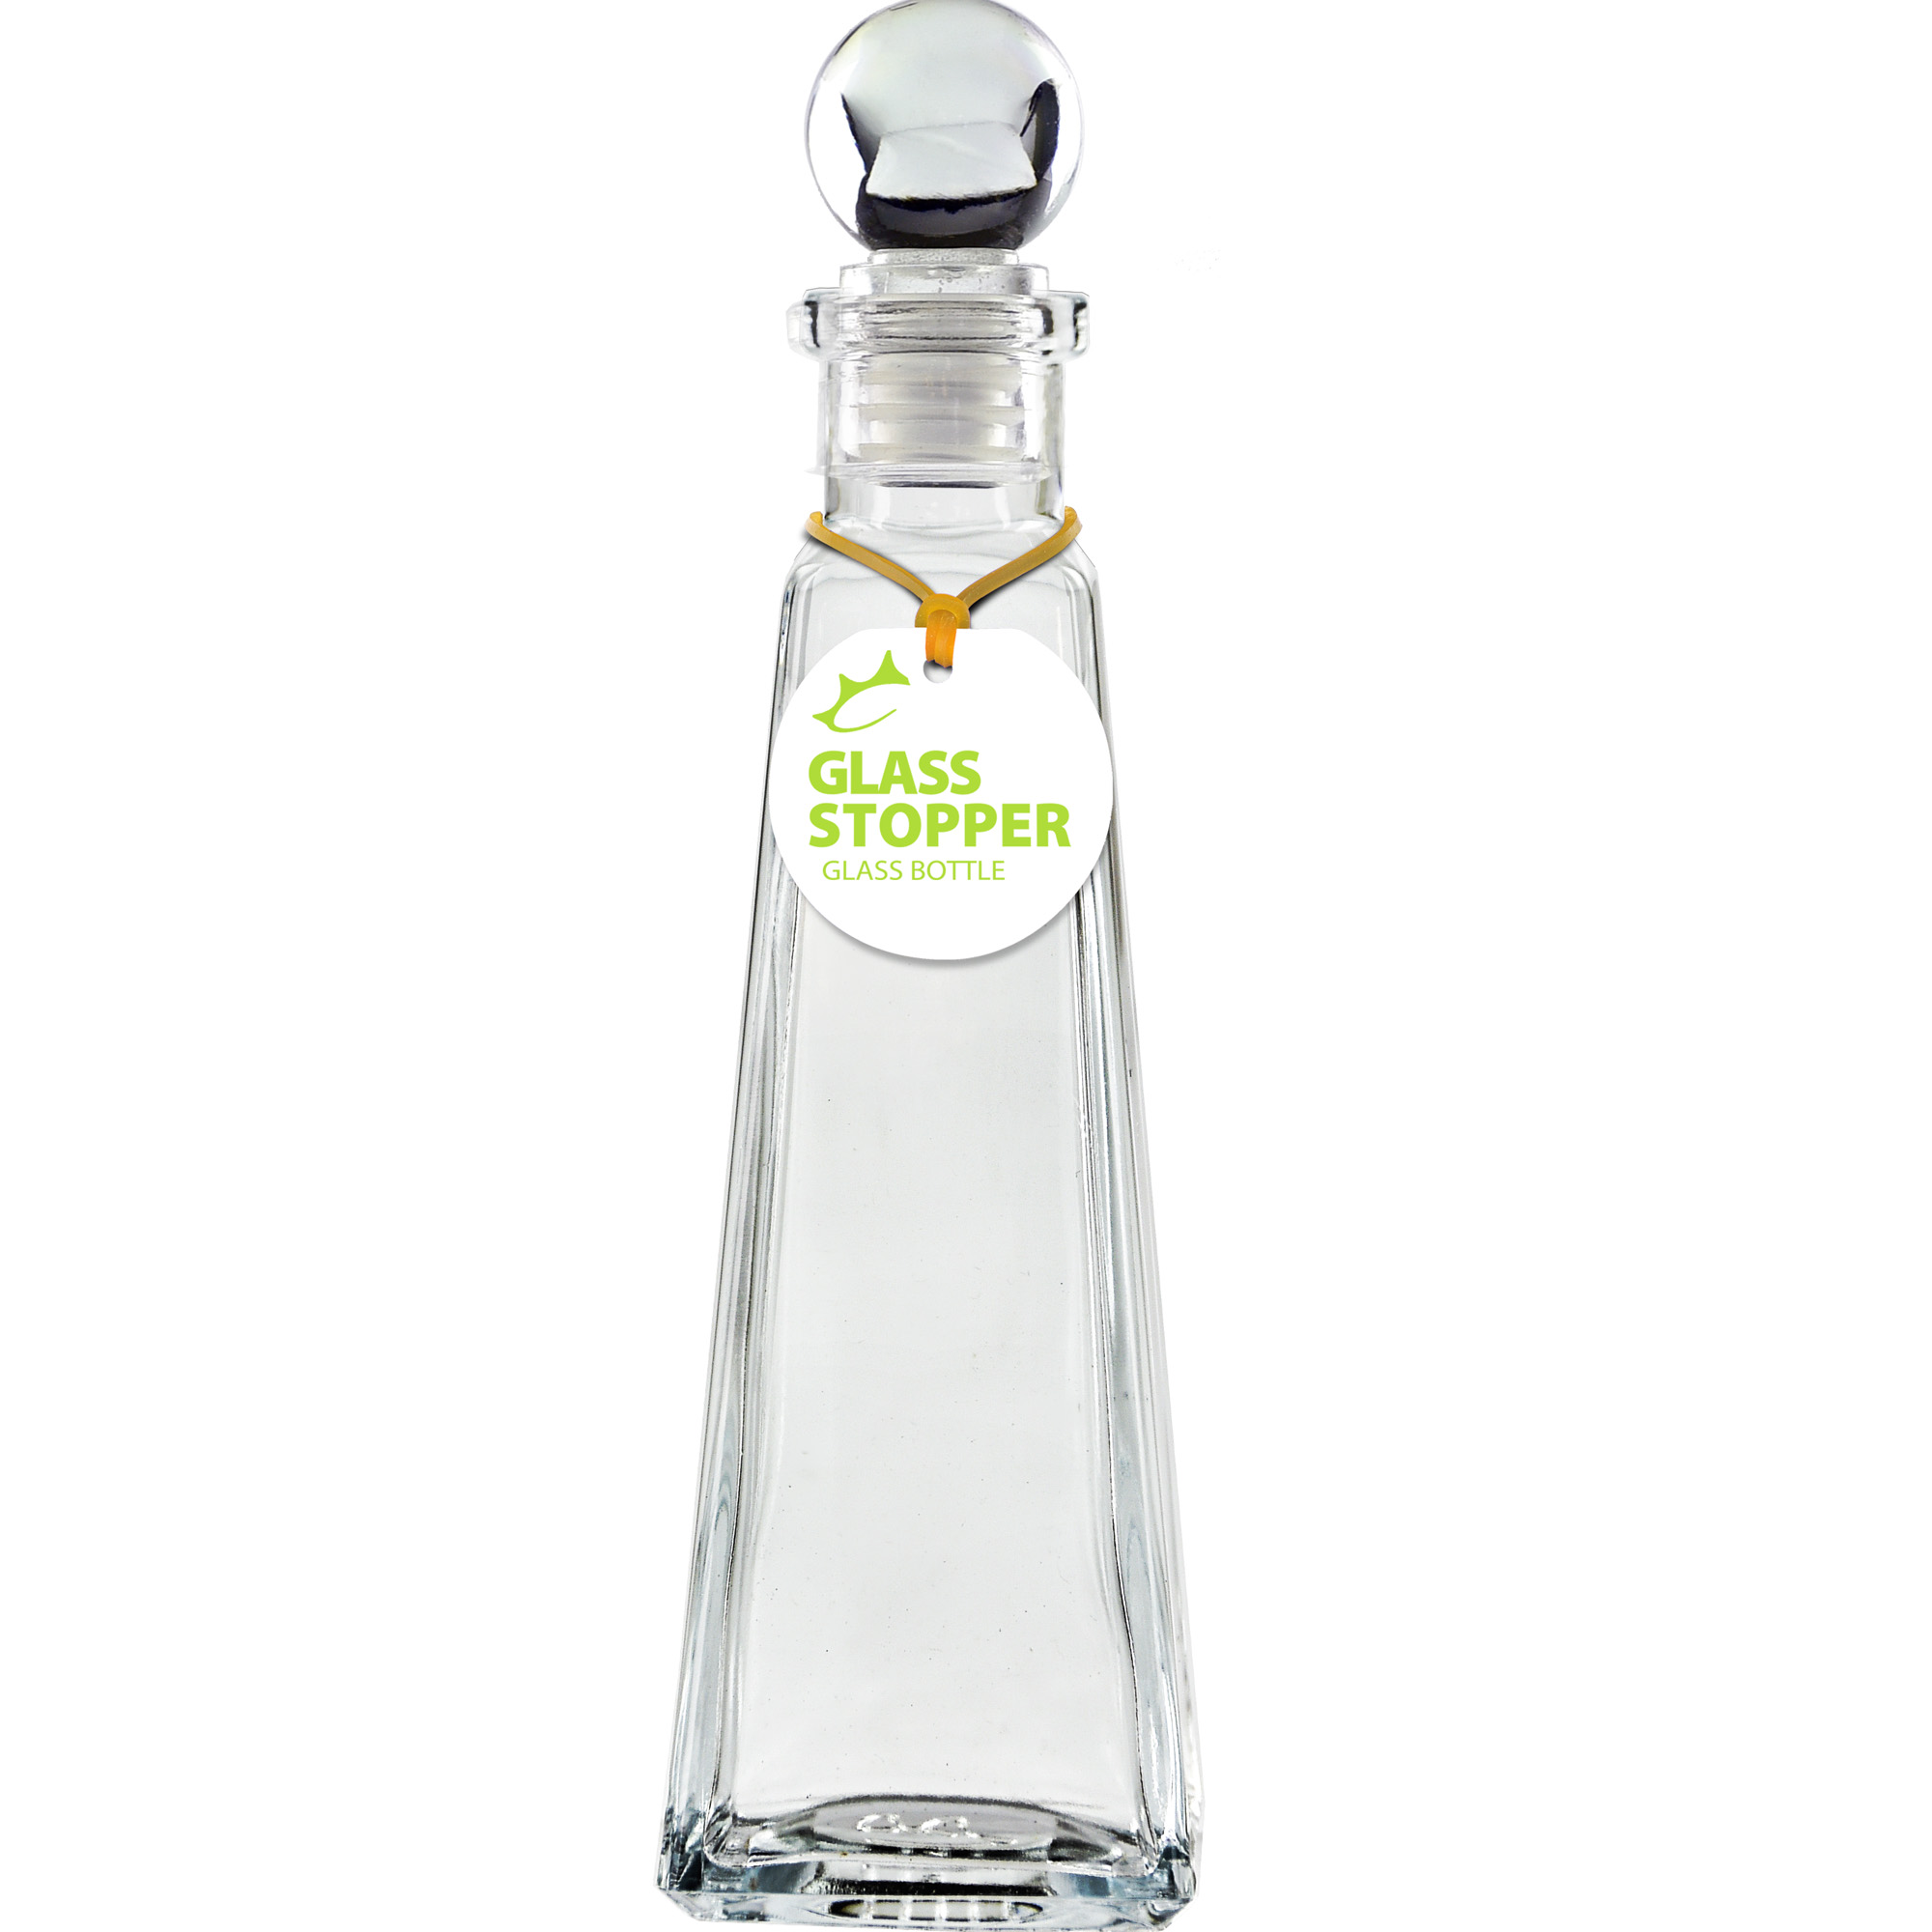 Details about Couronne Co  Pyramid Recycled Glass Bottle with Glass Top,  B6517T, 9 inches tall